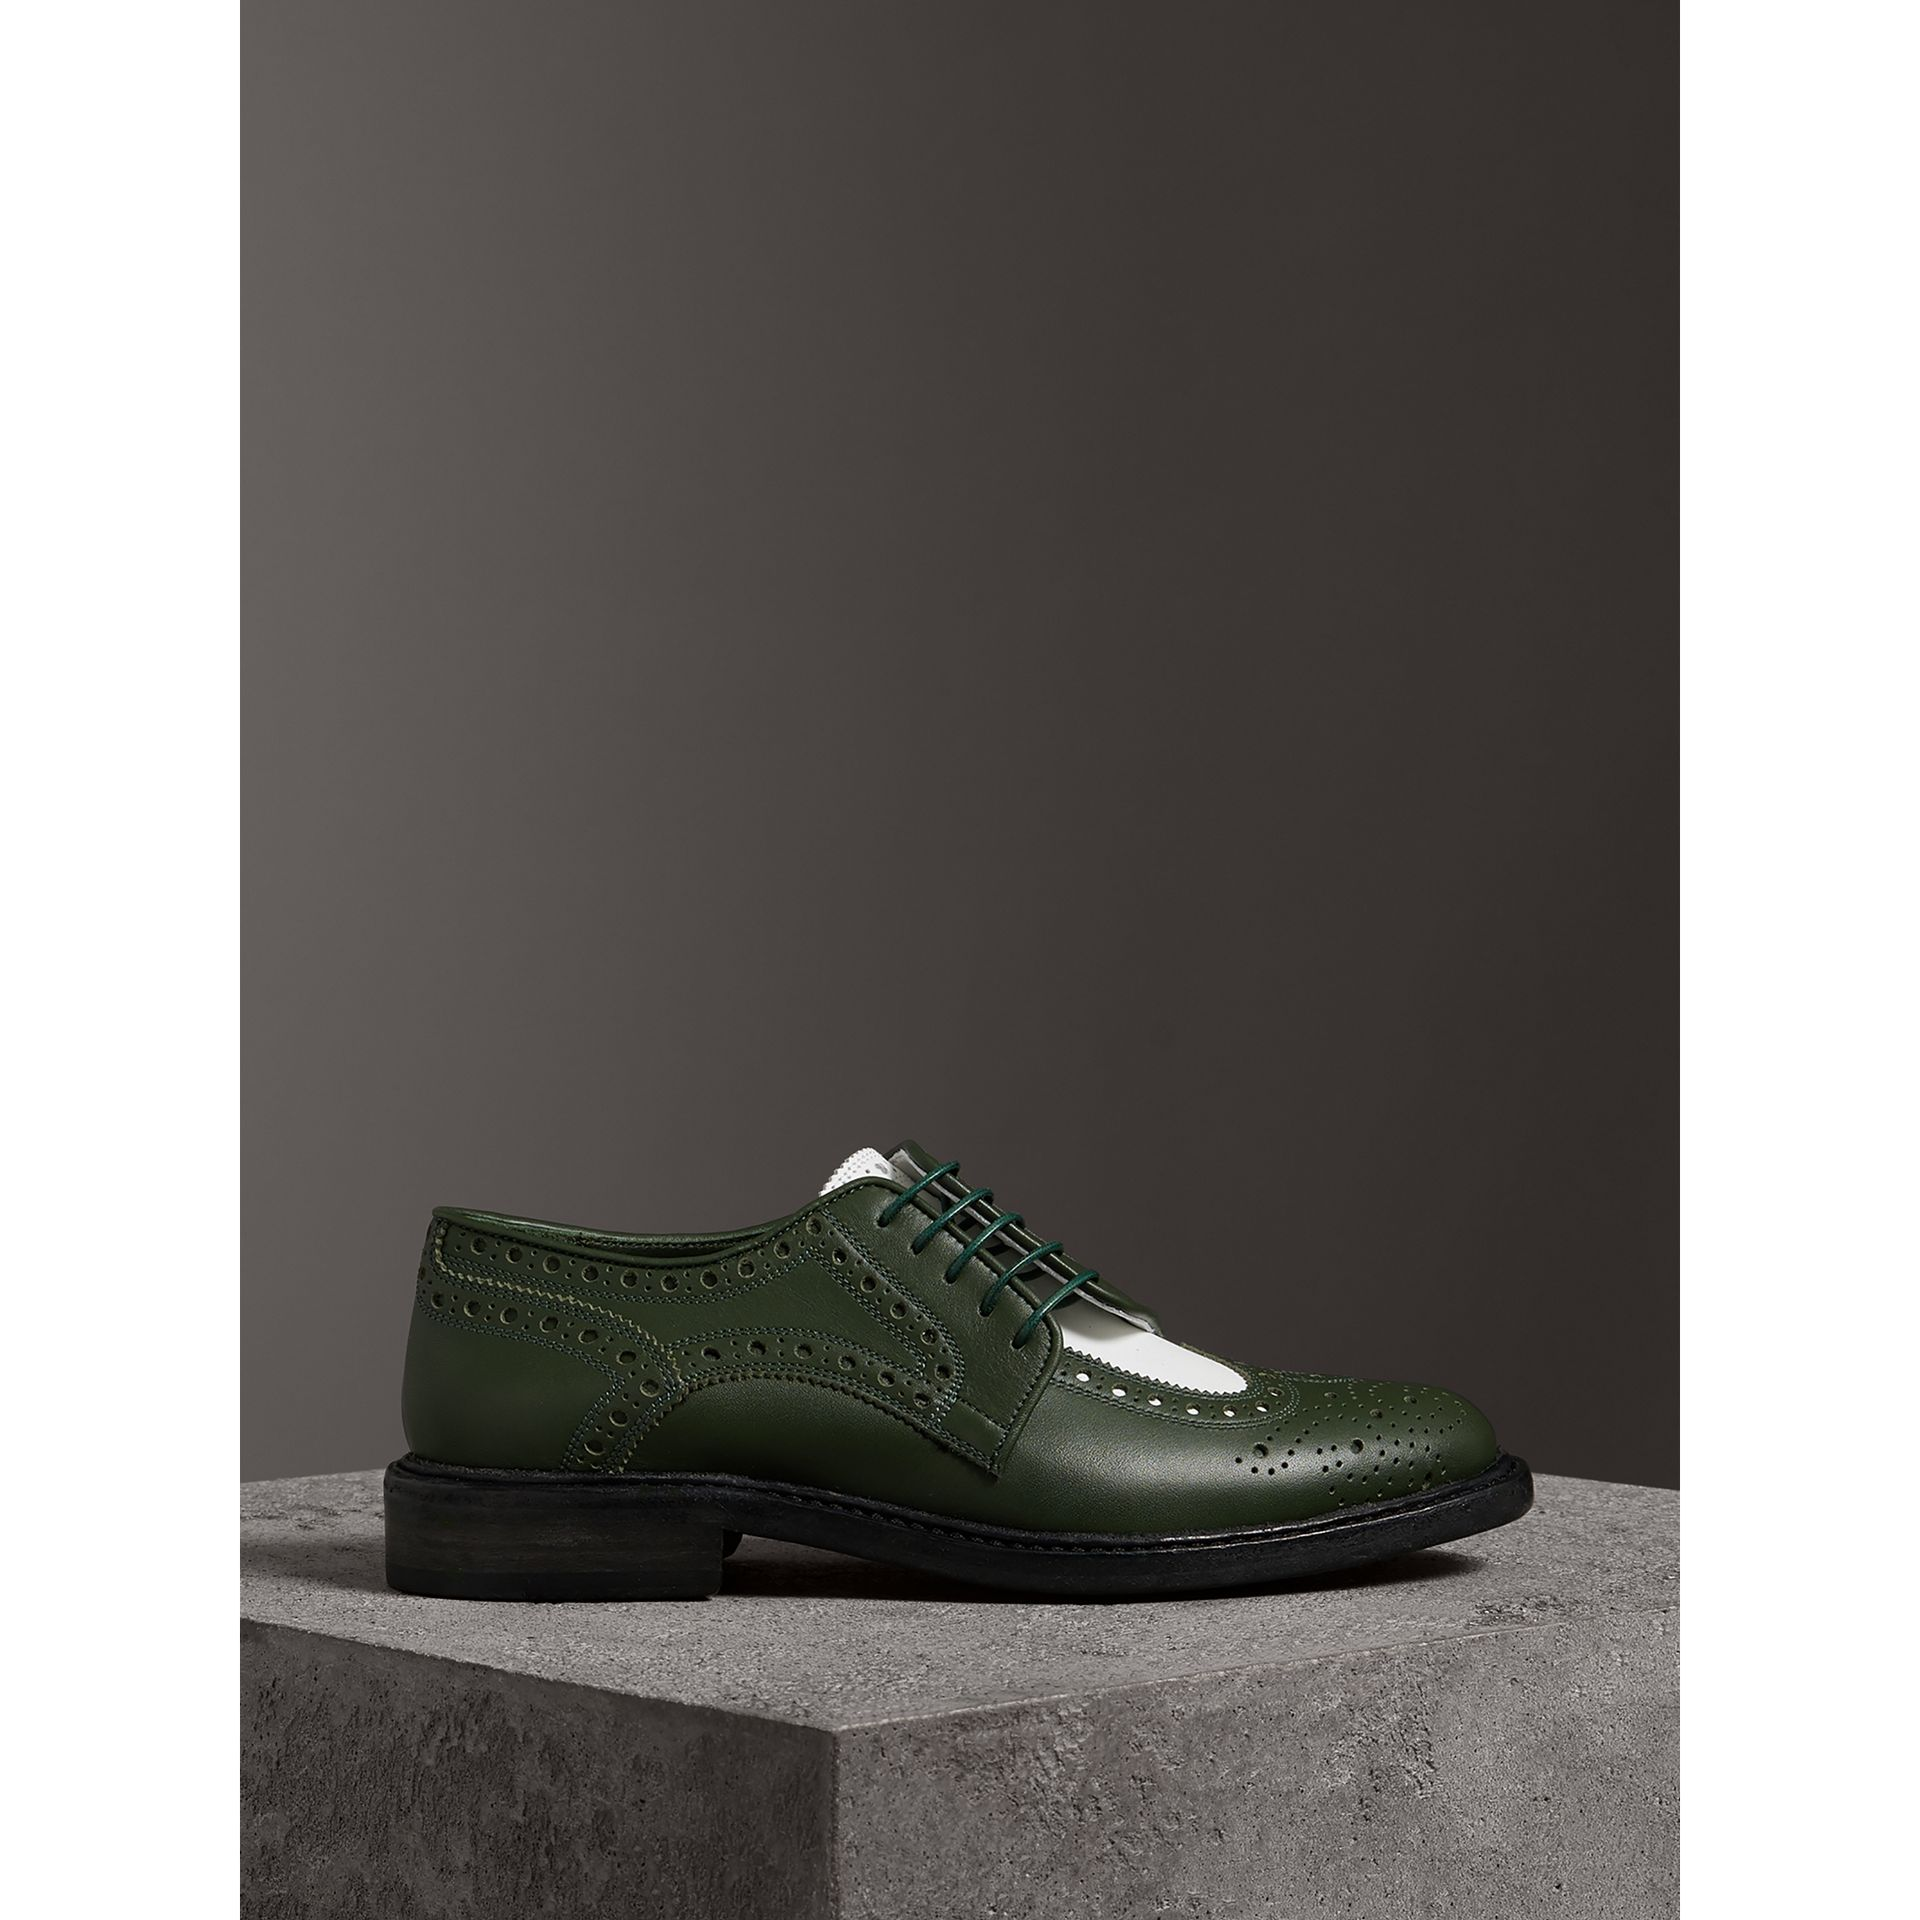 Two-tone Asymmetric Closure Leather Brogues in Dark Green - Women | Burberry United States - gallery image 4